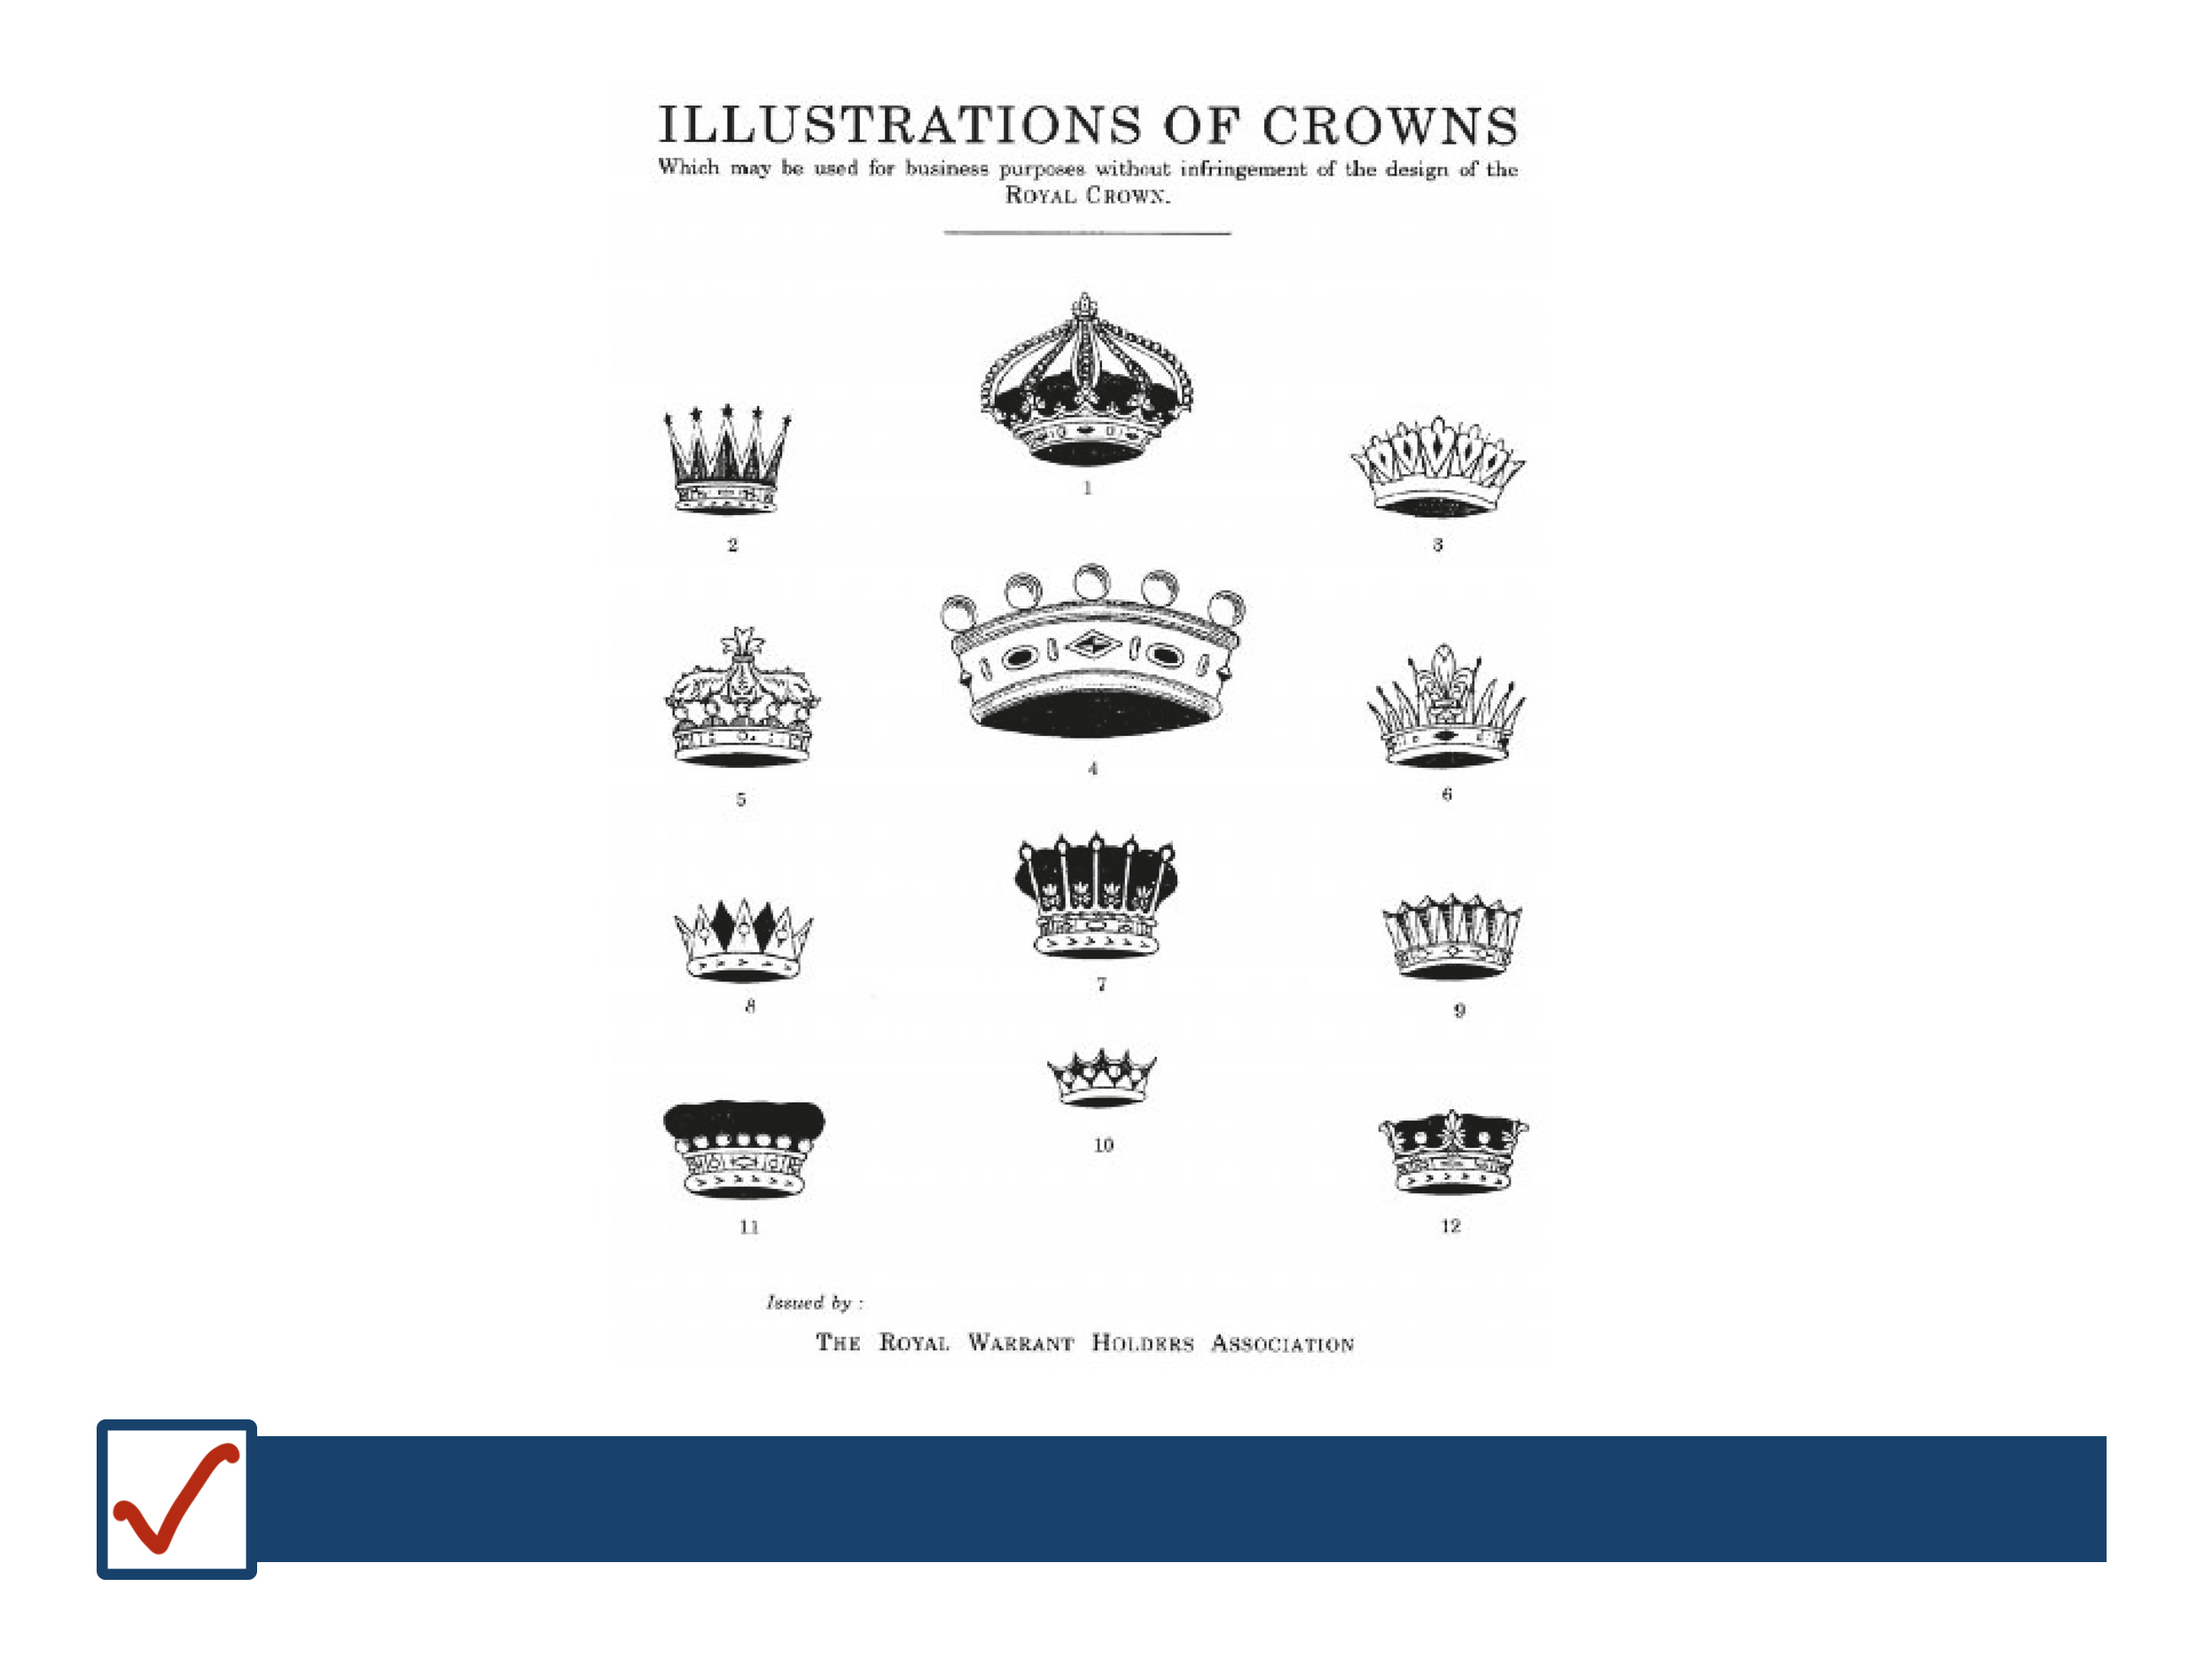 Illustrations of crowns